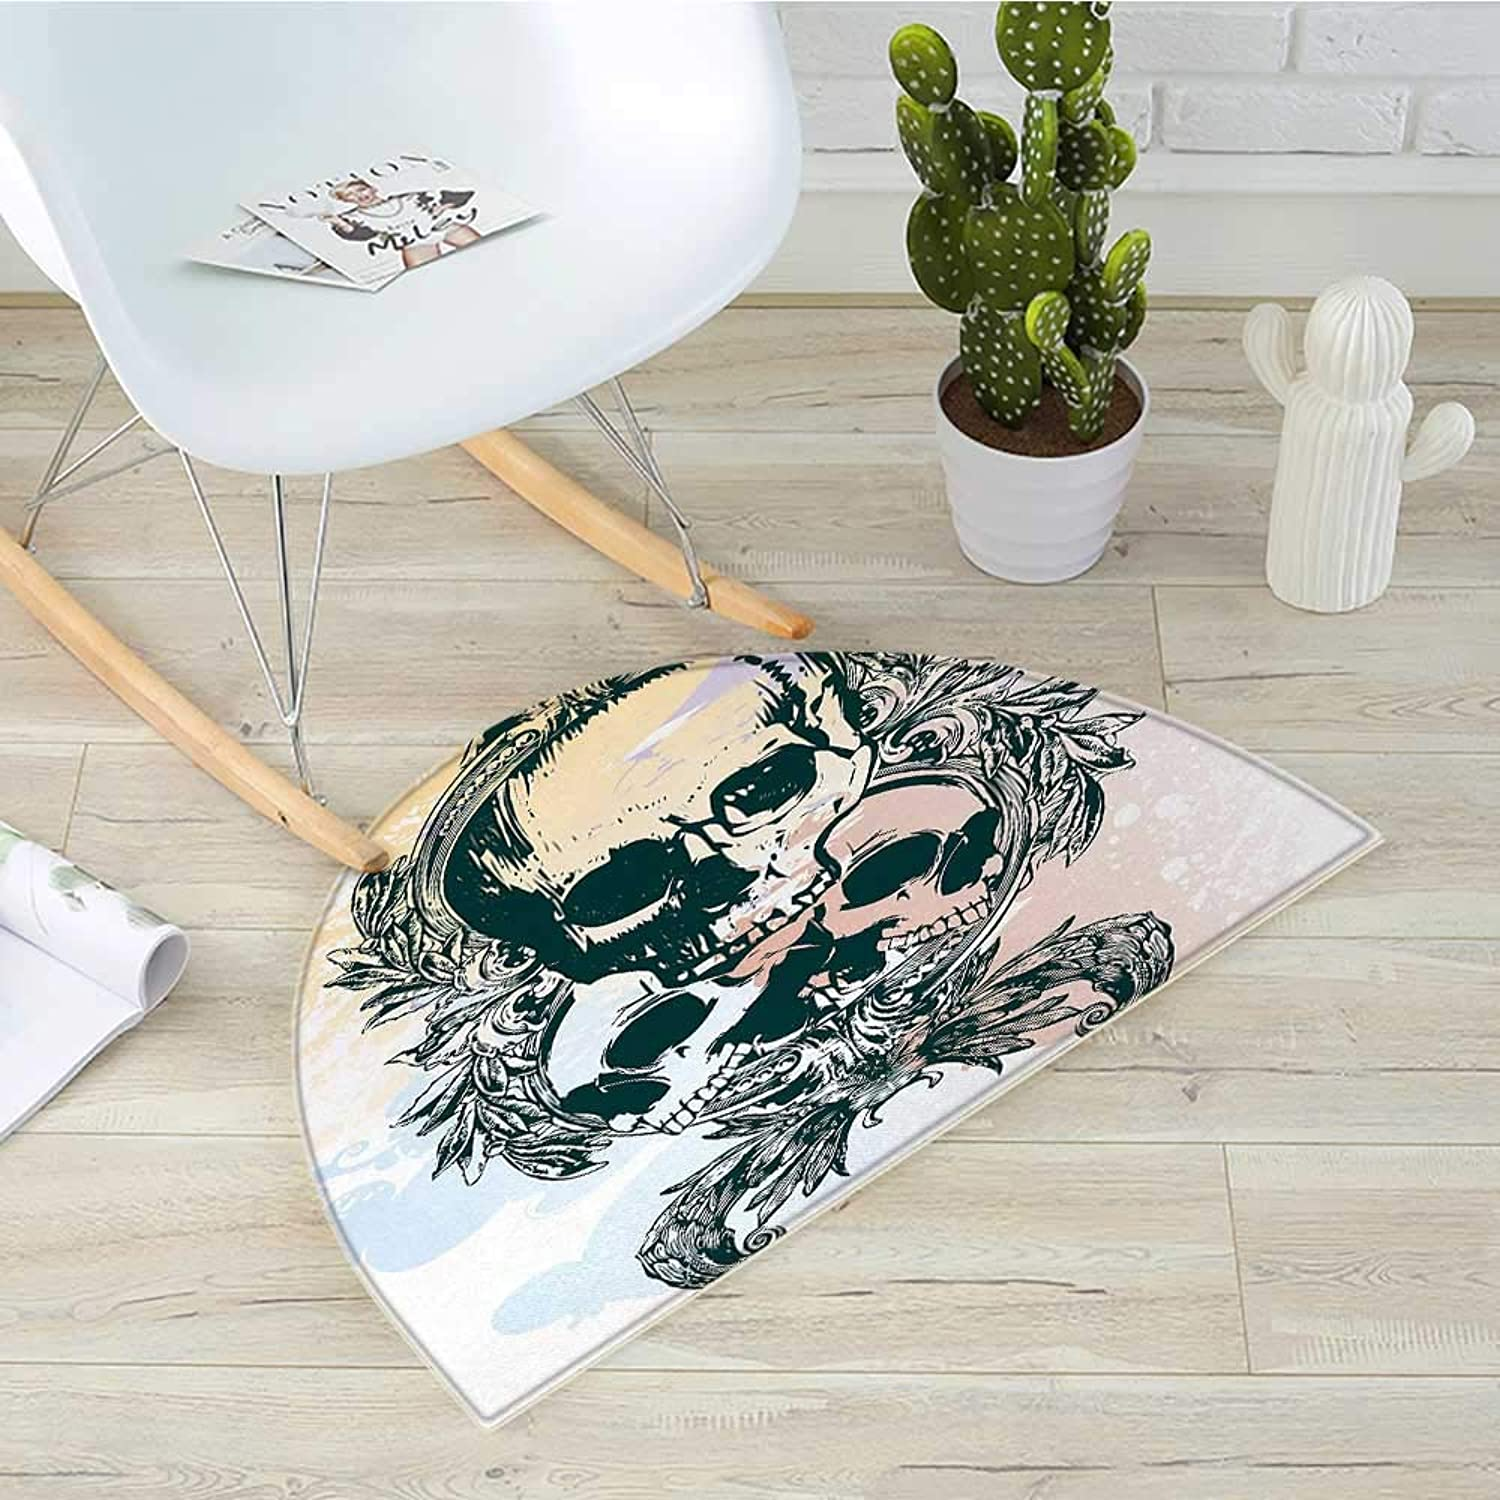 Skull Half Round Door mats Scary Deadly Rocker Skeleton Head Trio with Frames from Leaves Image Bathroom Mat H 39.3  xD 59  Emerald purplec Light Yellow